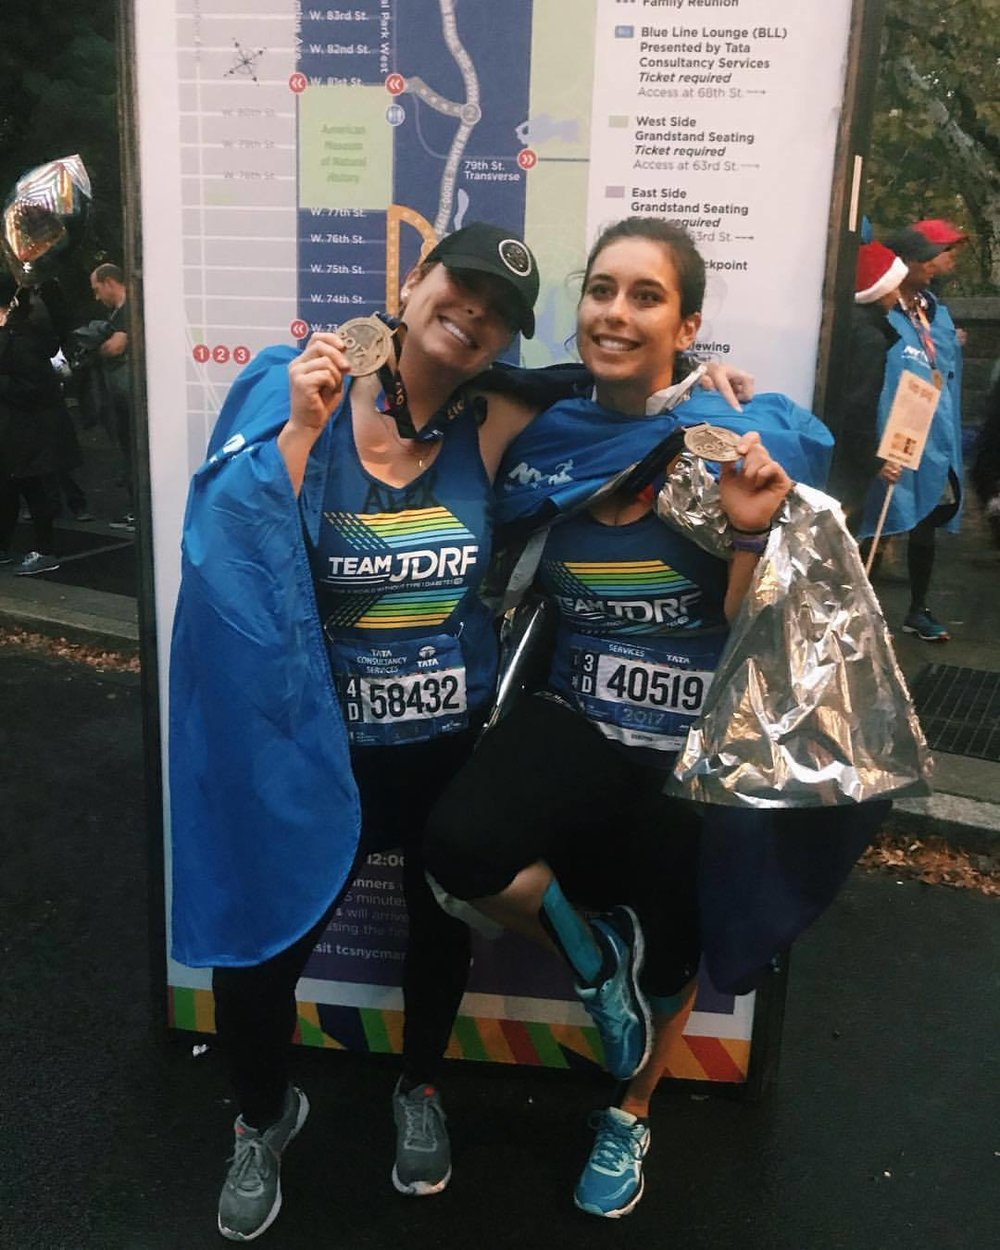 Alex ran the 2017 Marathon to raise money for JDRF and awareness for T1D!